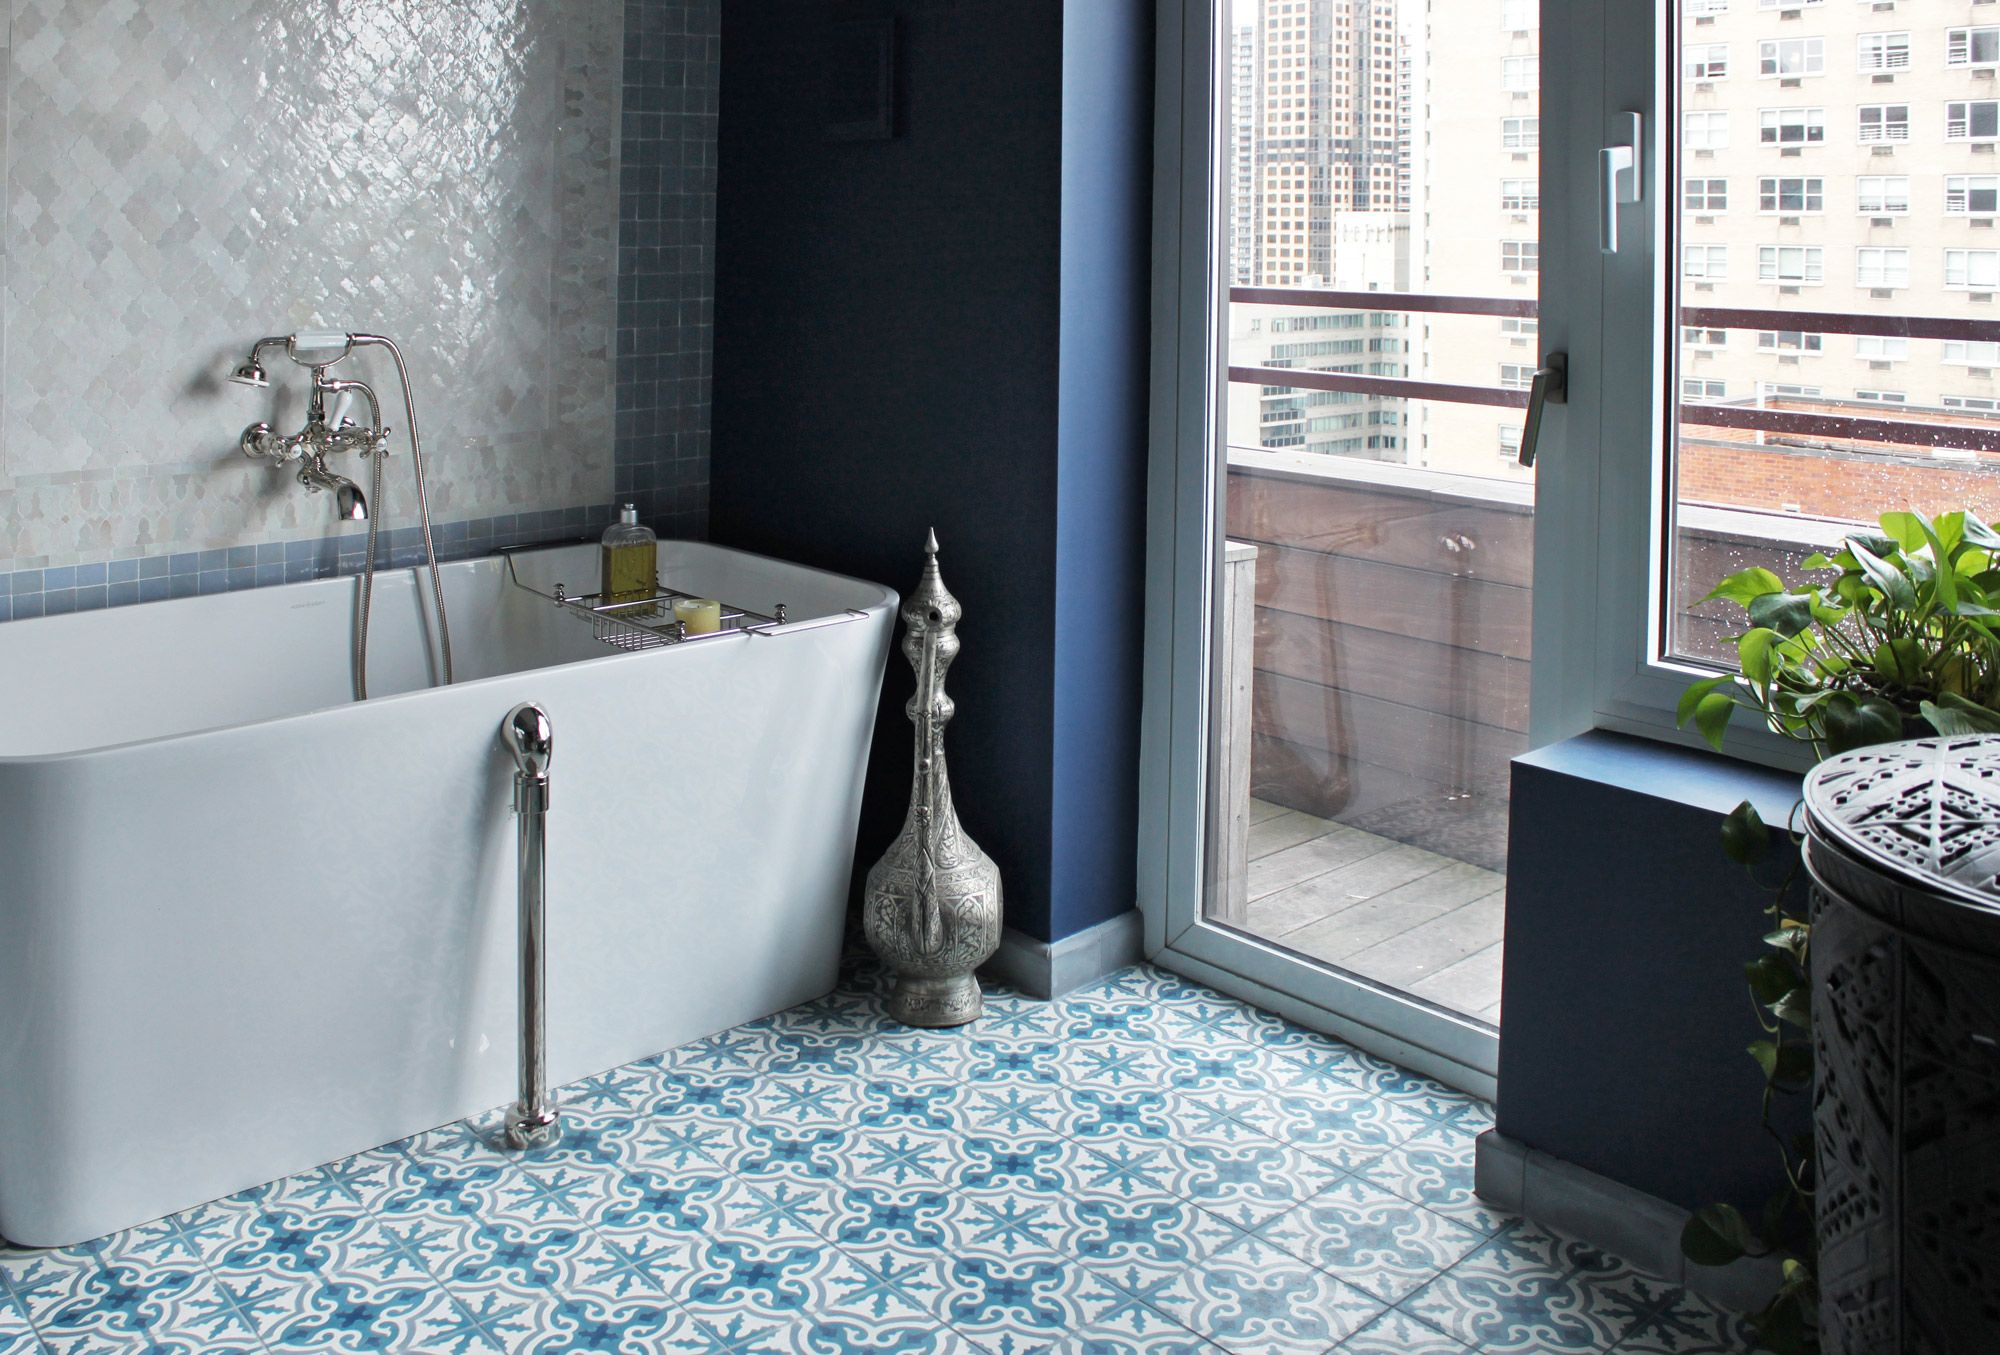 Kitchen Bath And Floors 10 Gorgeous Ways To Do Patterned Tile In The Bathroom Ceramic